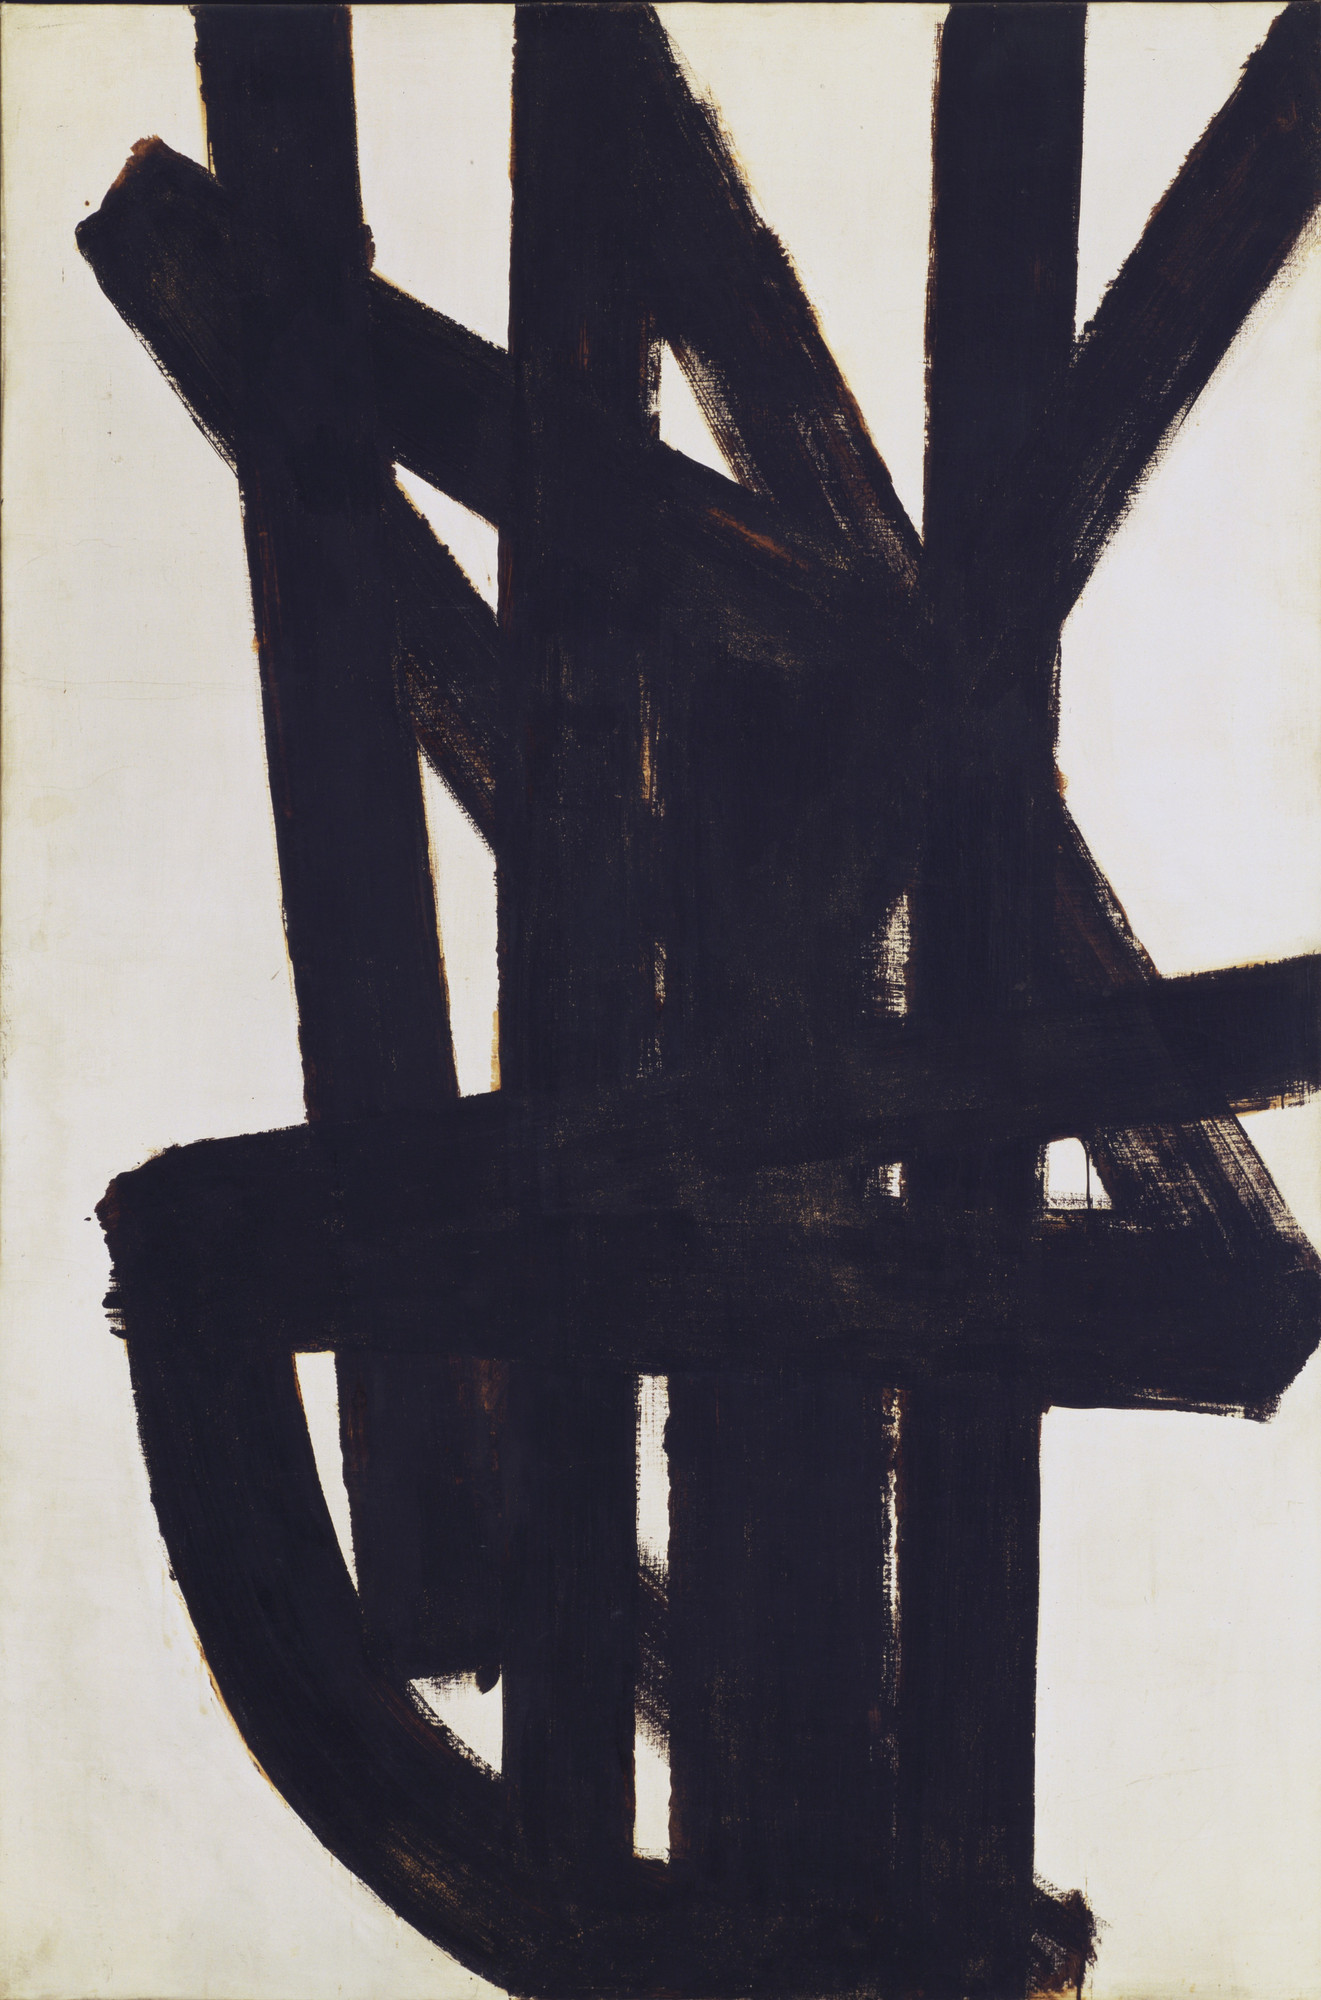 Pierre Soulages. Painting. 1948-49